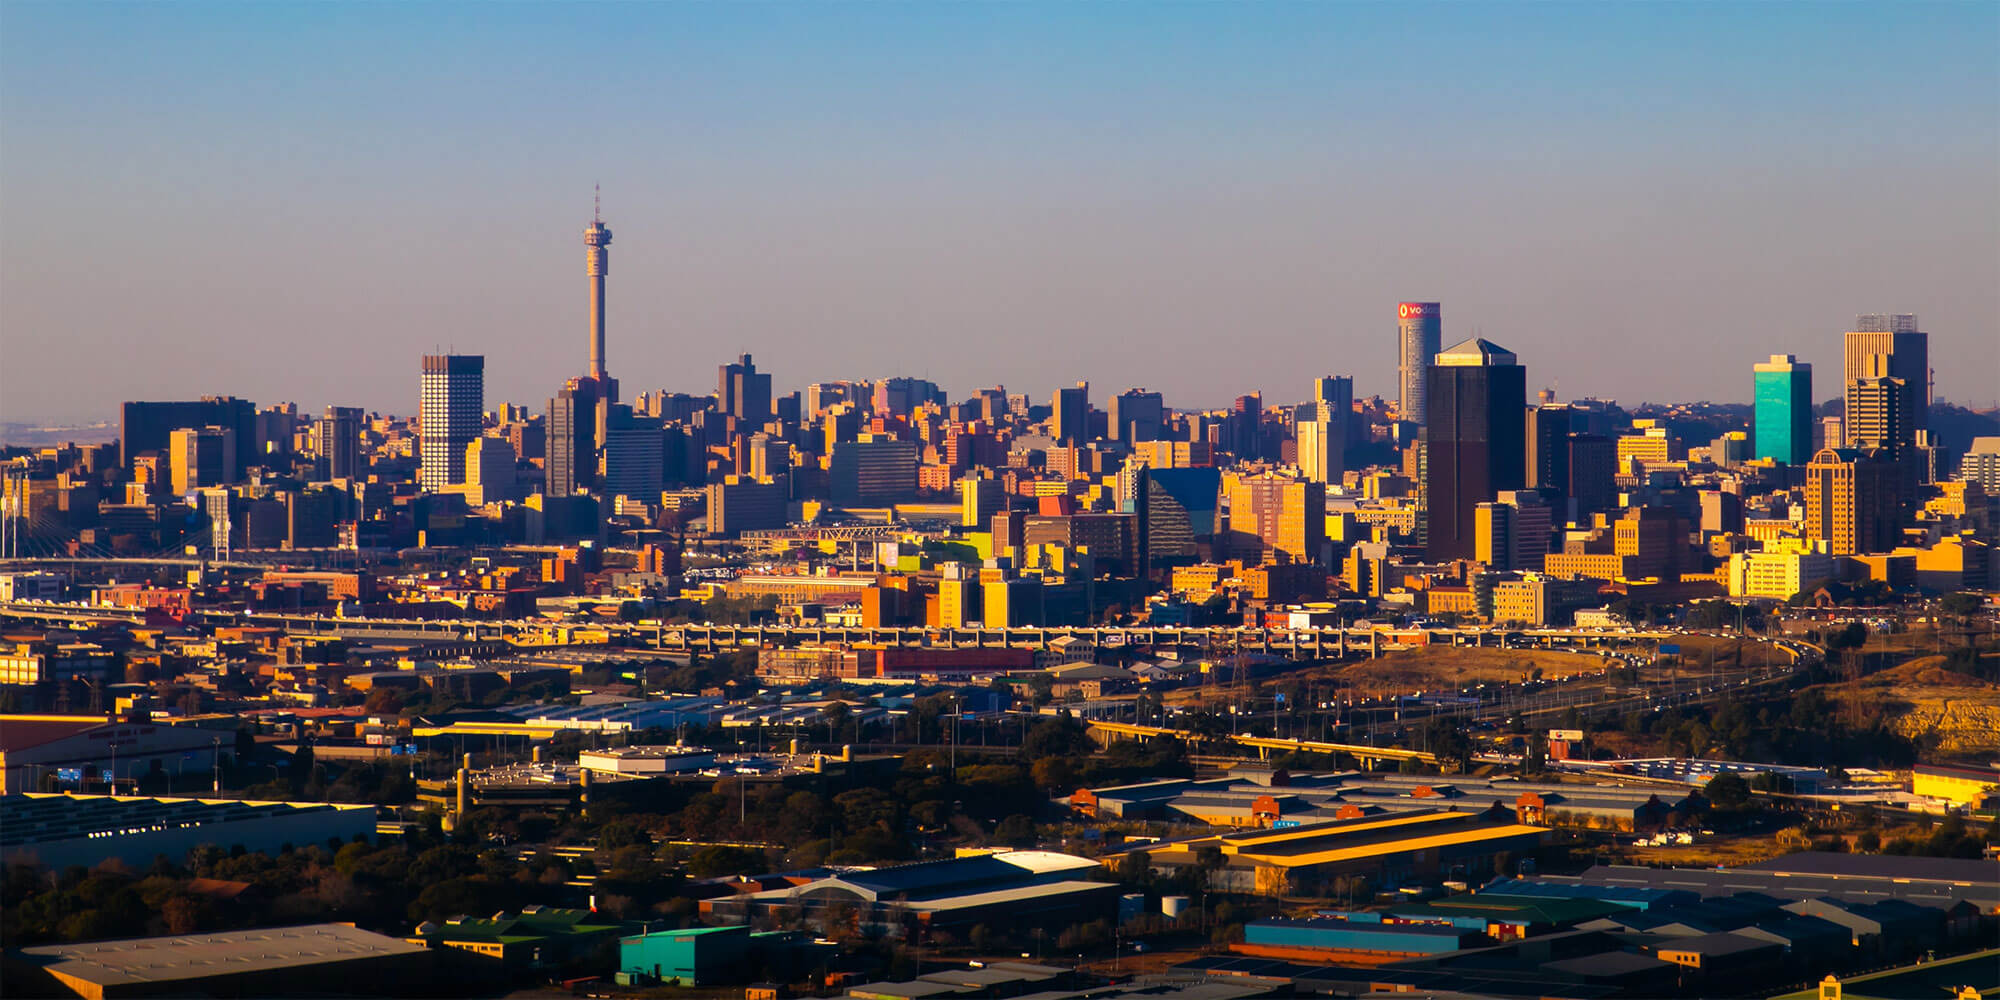 johannesburg 4322256 - How does Johannesburg measure up as a megacity?